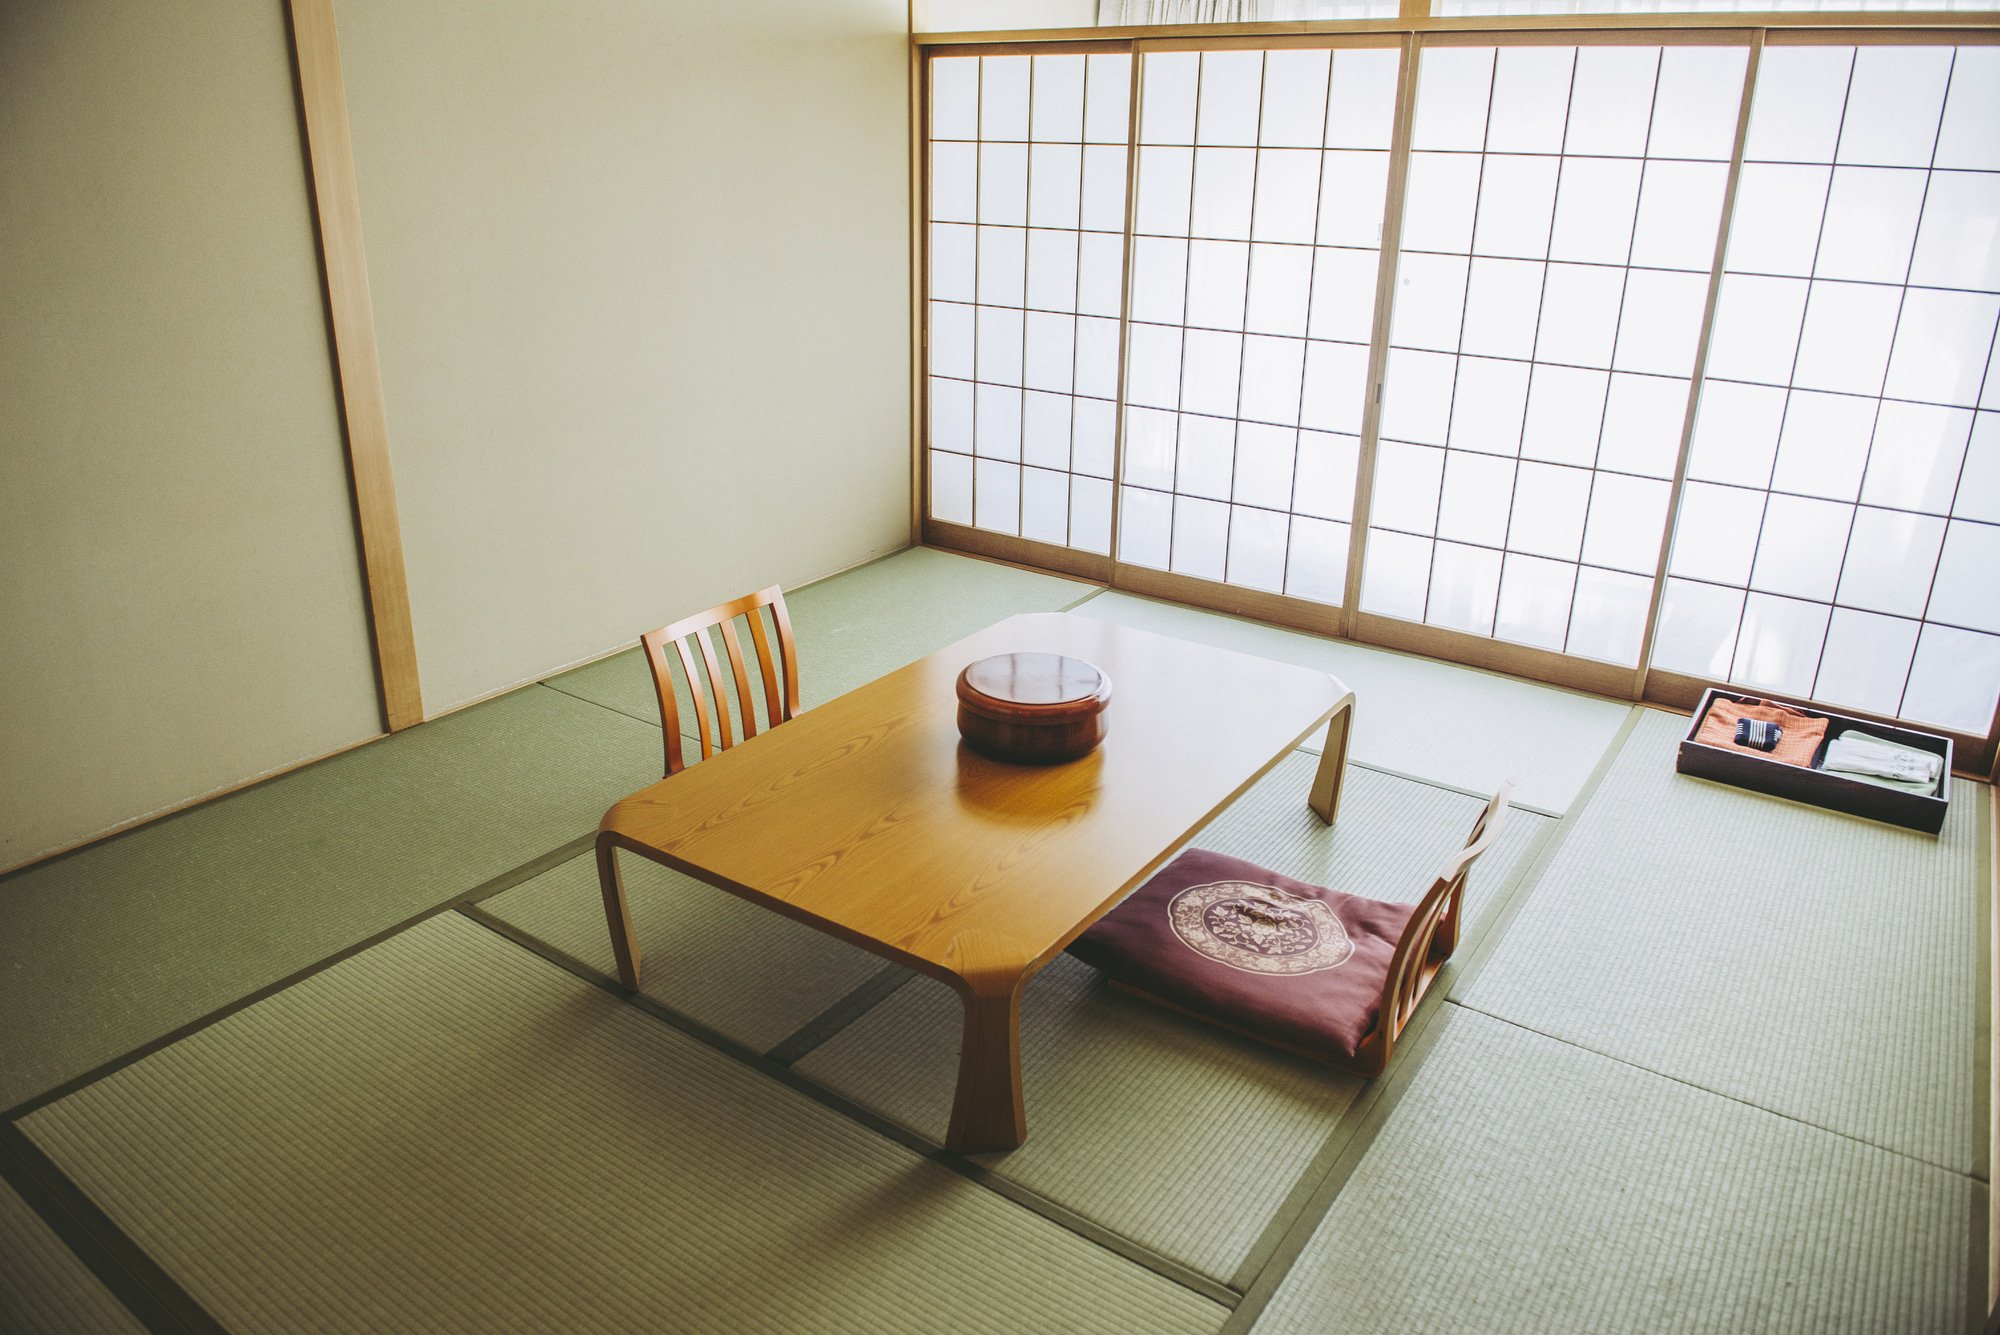 Traditional Japanese Rooms - The Structure And Parts Of Washitsu